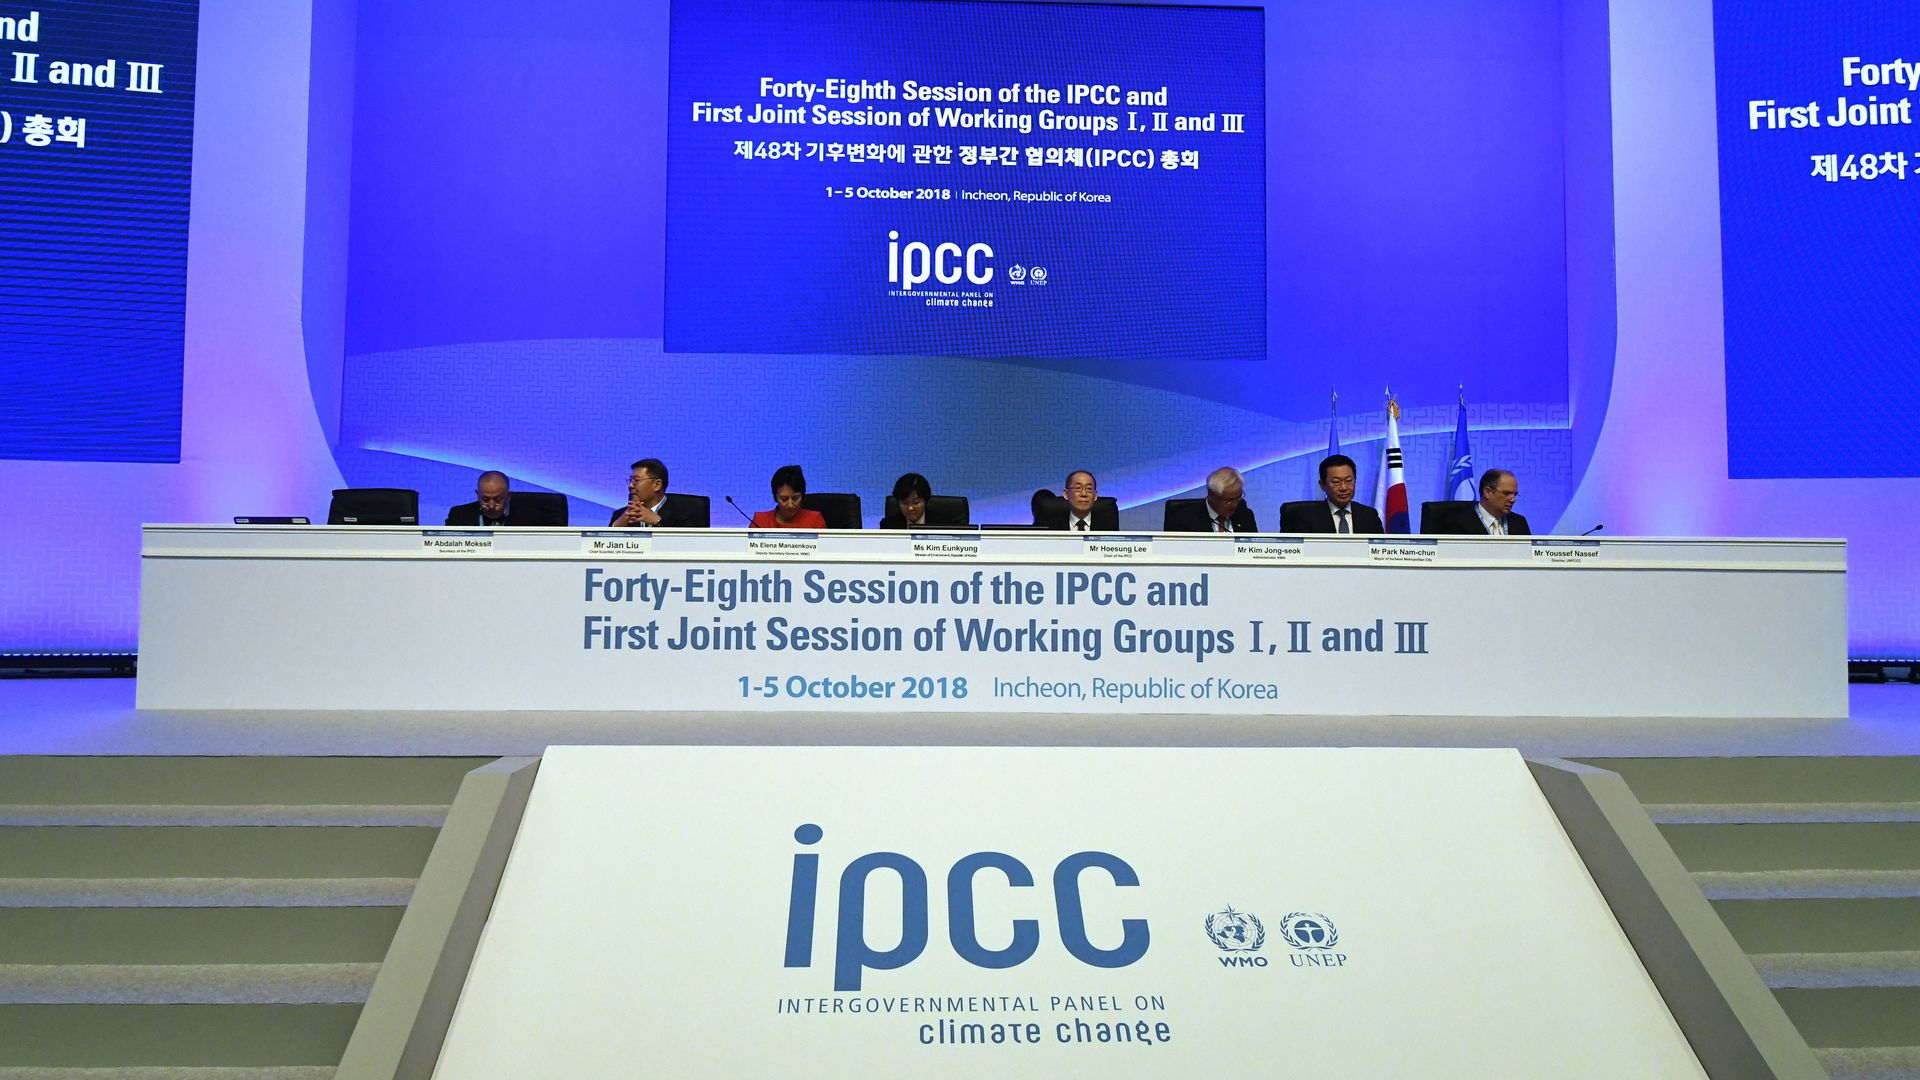 A meeting of the Intergovernmental Panel on Climate Change